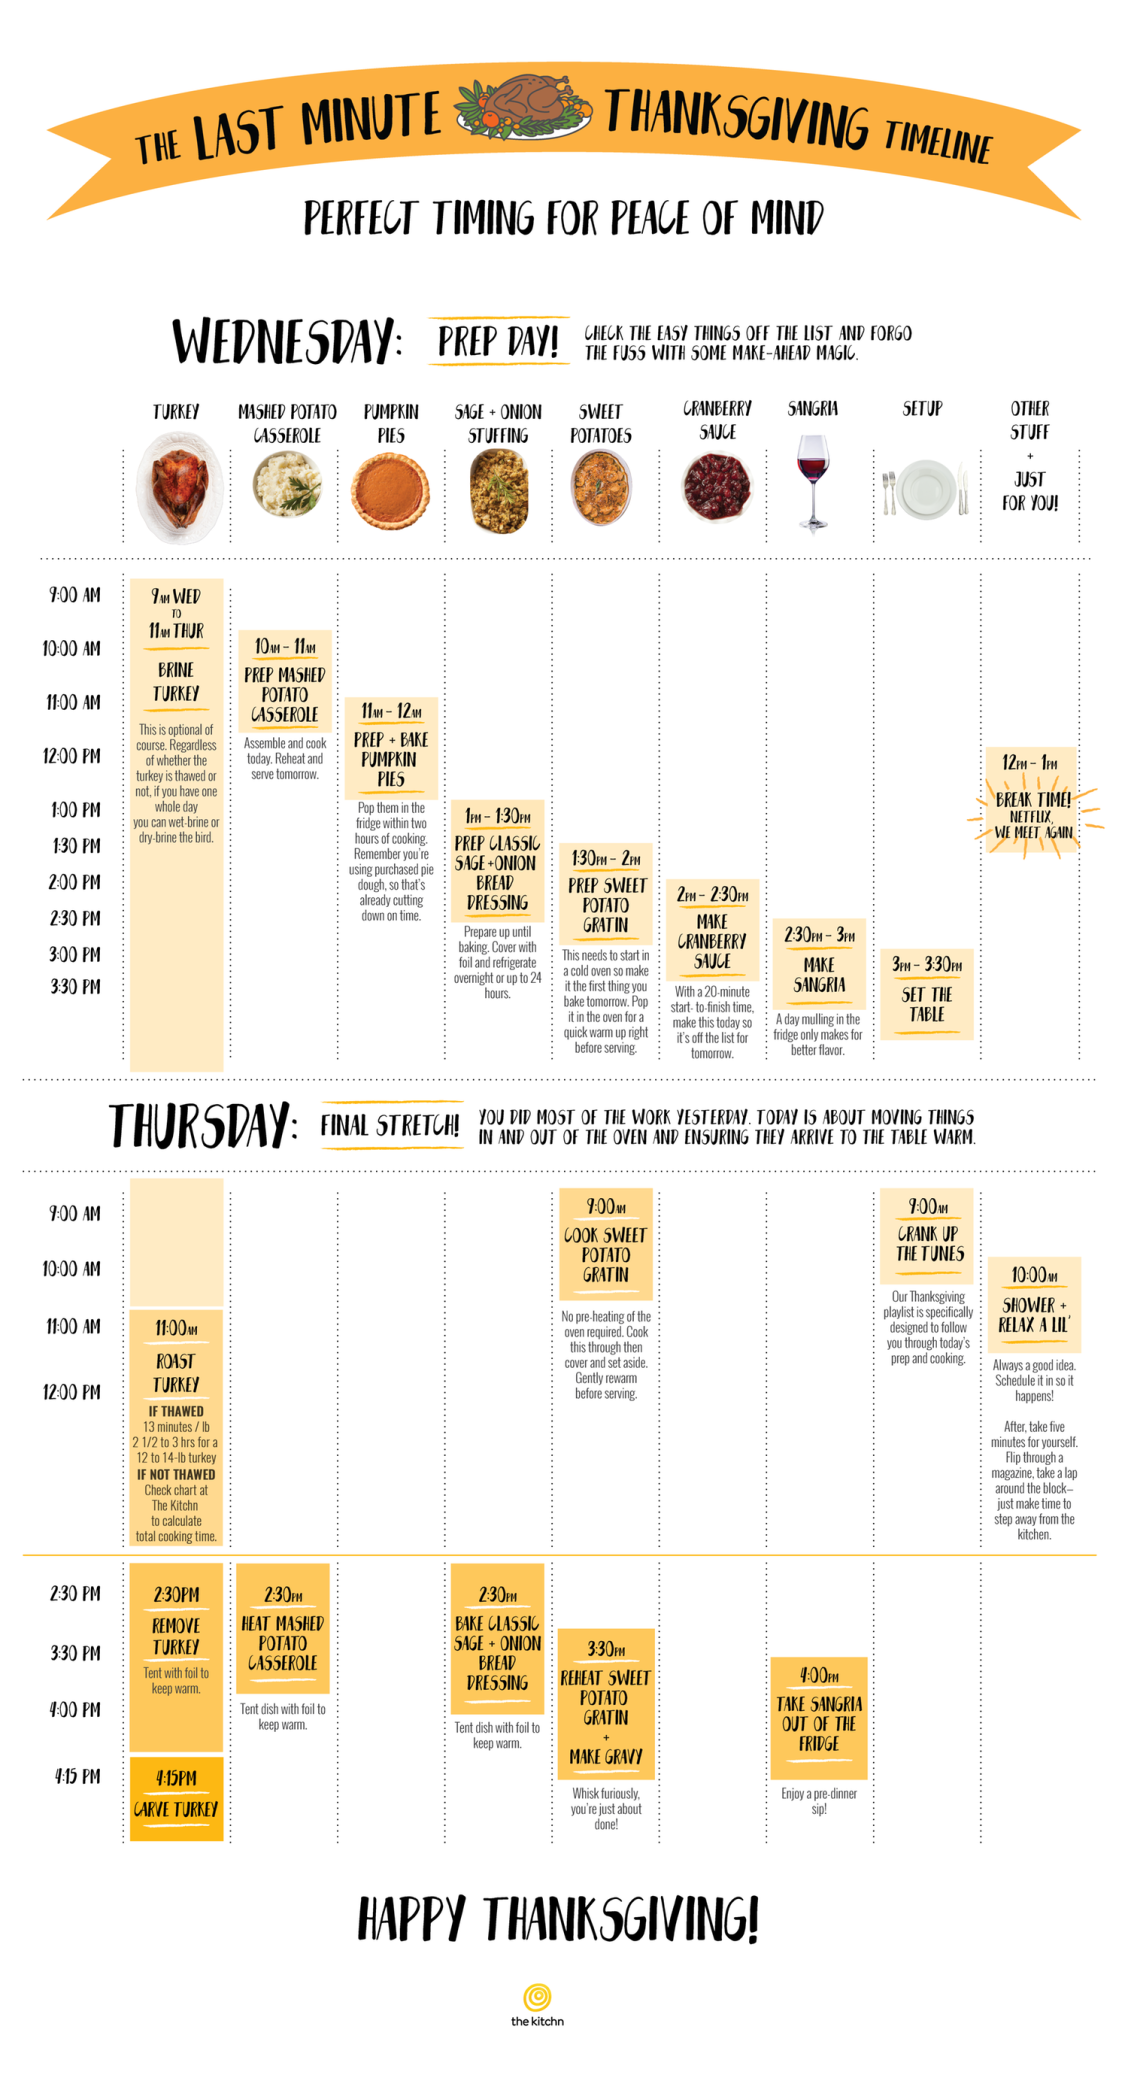 A Last Minute No Sweat Timeline For Cooking Thanksgiving